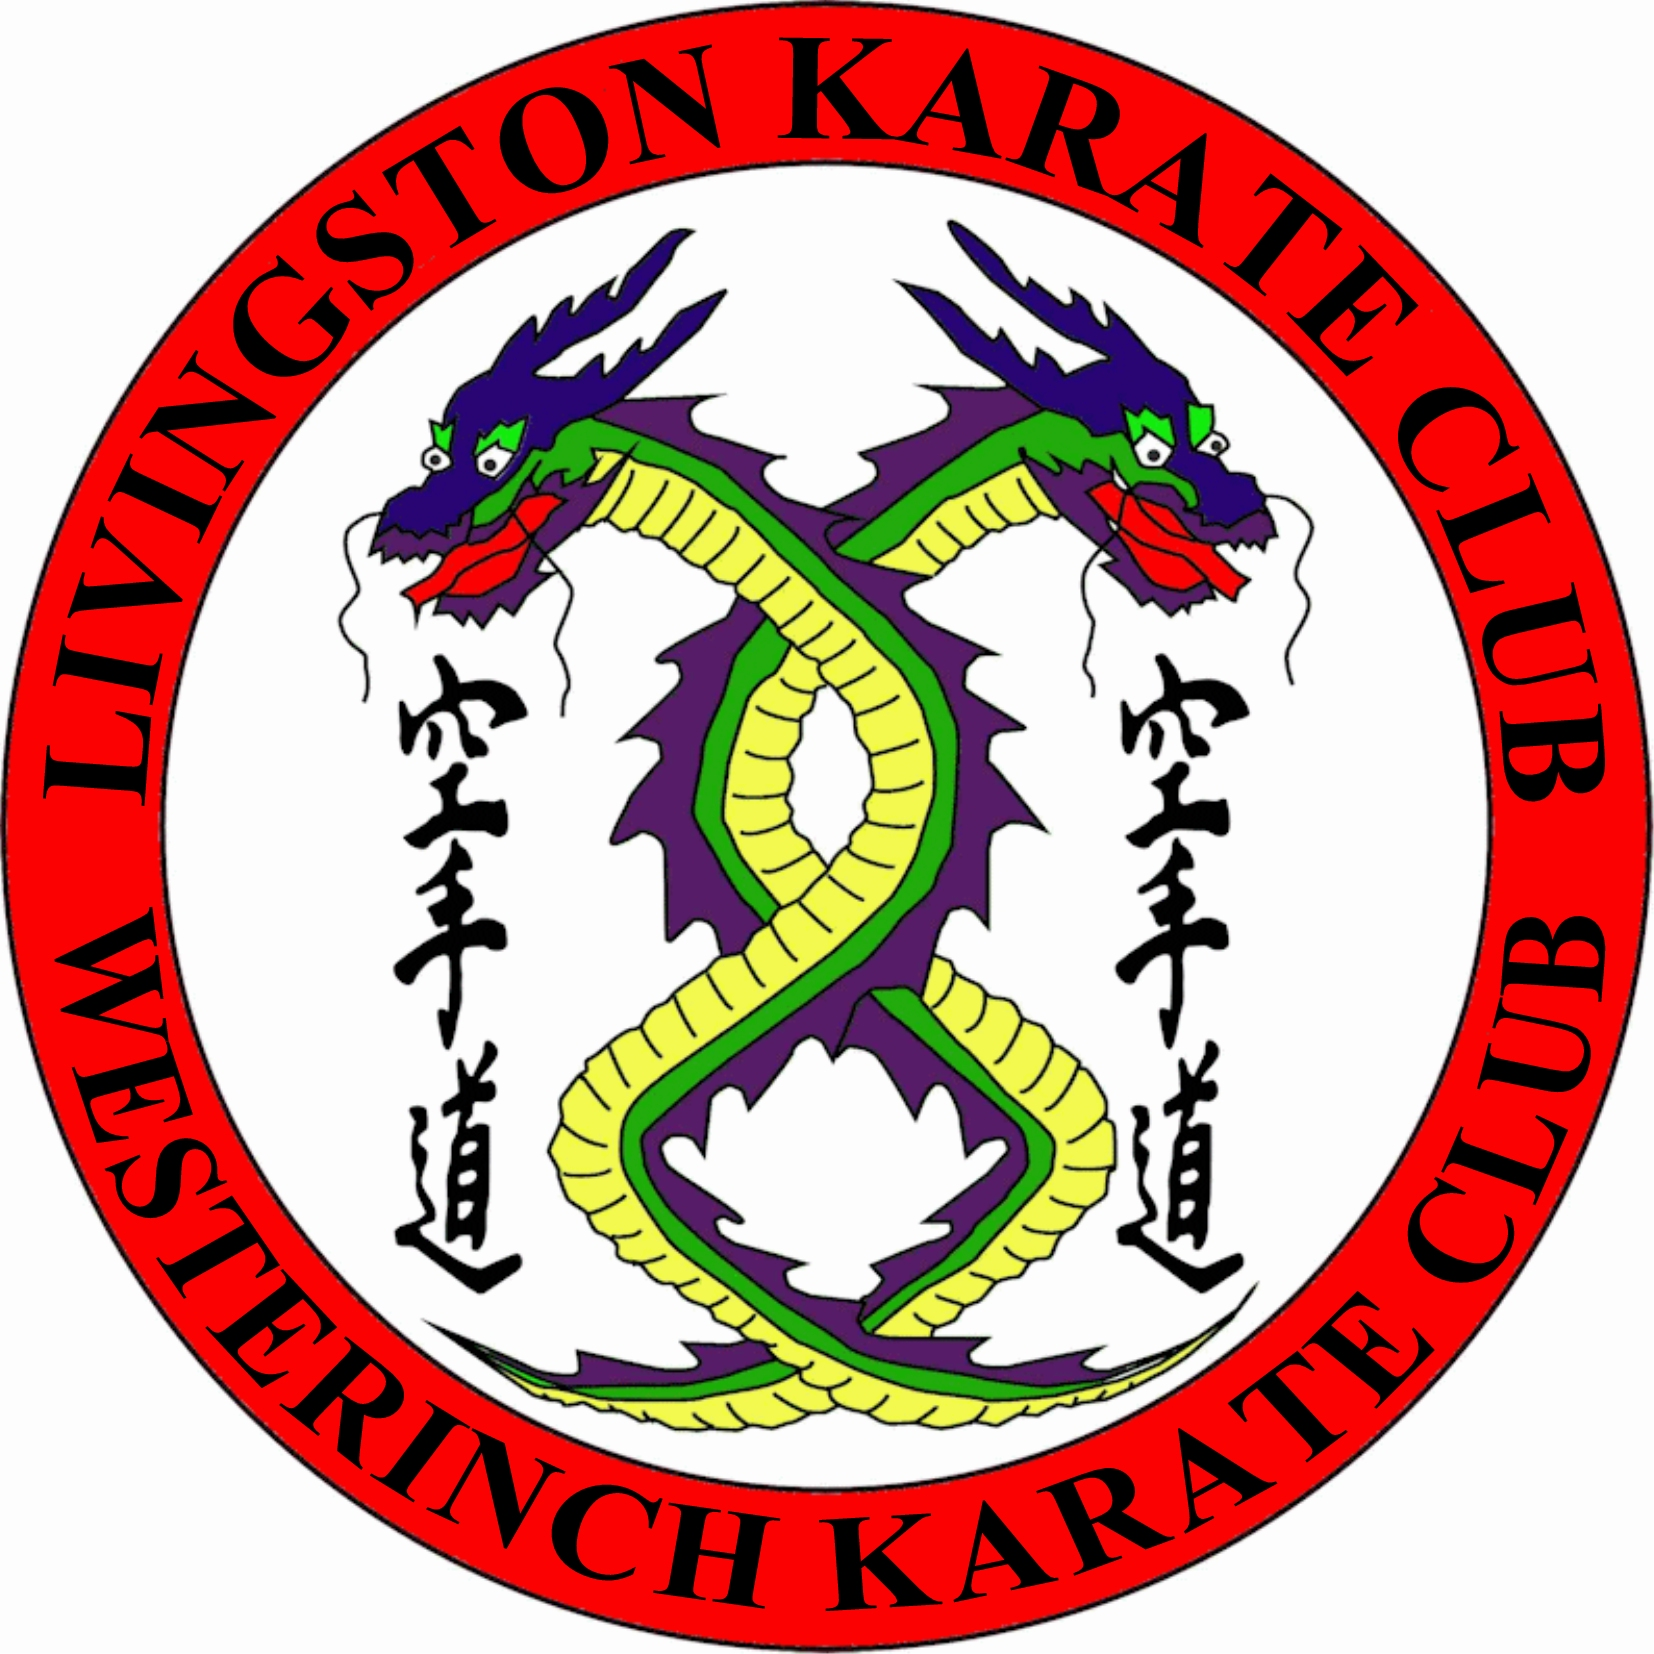 Livingston Karate Club Logo